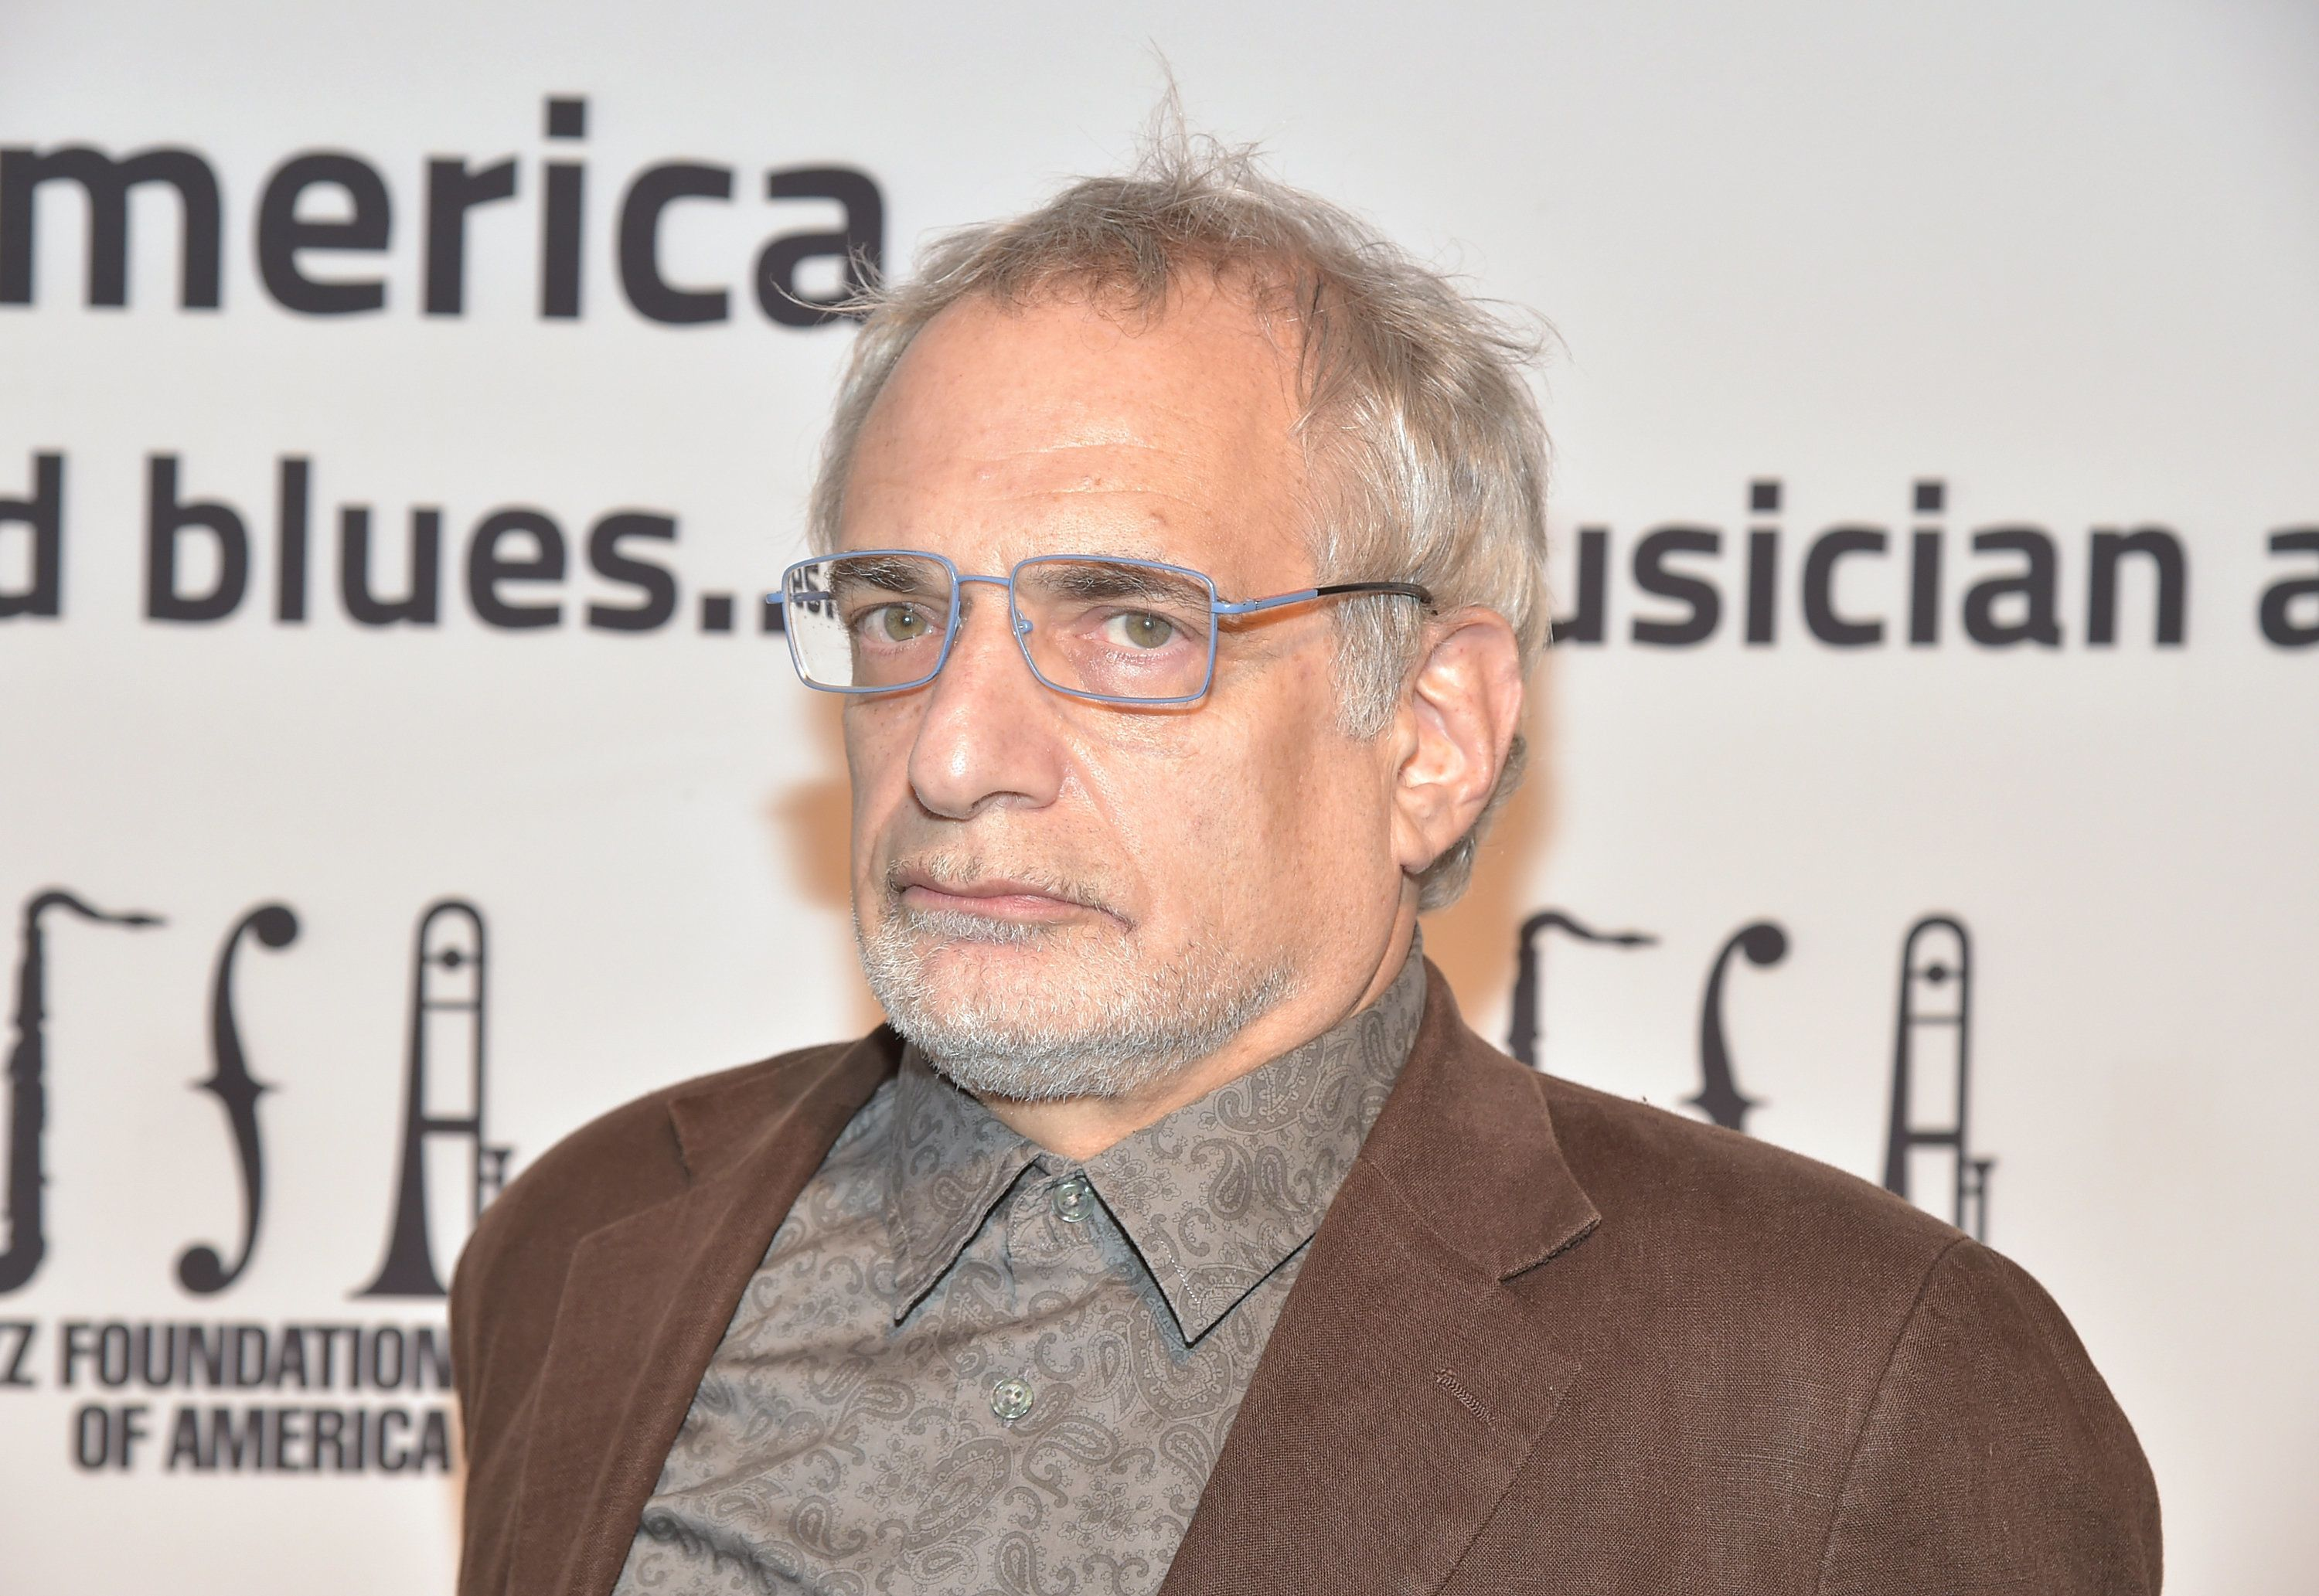 NEW YORK, NY - OCTOBER 22: Donald Fagen attends The Jazz Foundation of America Presents the 14th Annual 'A Great Night in Harlem' Gala Concert to Benefit Their Jazz Musicians Emergency Fund Saving Jazz, Blues and R & B....One Musician at a Time - Red Carpet at The Apollo Theater on October 22, 2015 in New York City.  (Photo by Theo Wargo/Getty Images for The Jazz Foundation of America)